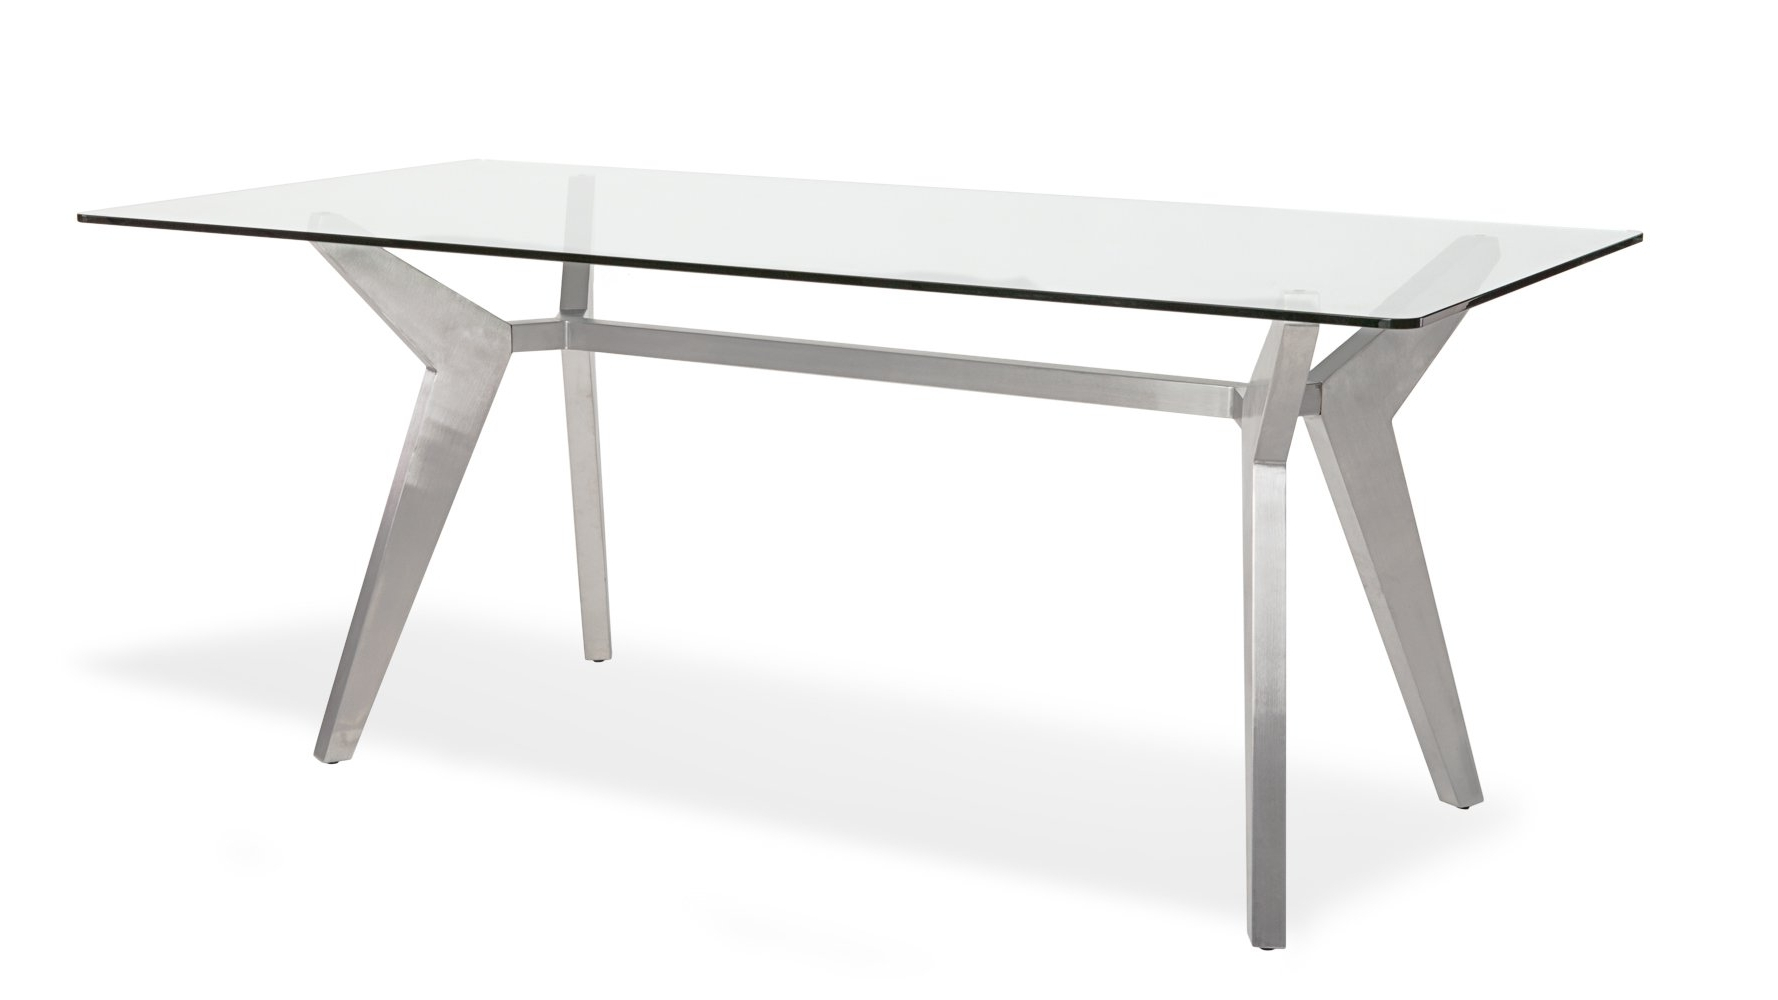 Brushed Metal Dining Tables Regarding 2018 Argo Glass Dining Table With Brushed Metal Base (View 3 of 25)